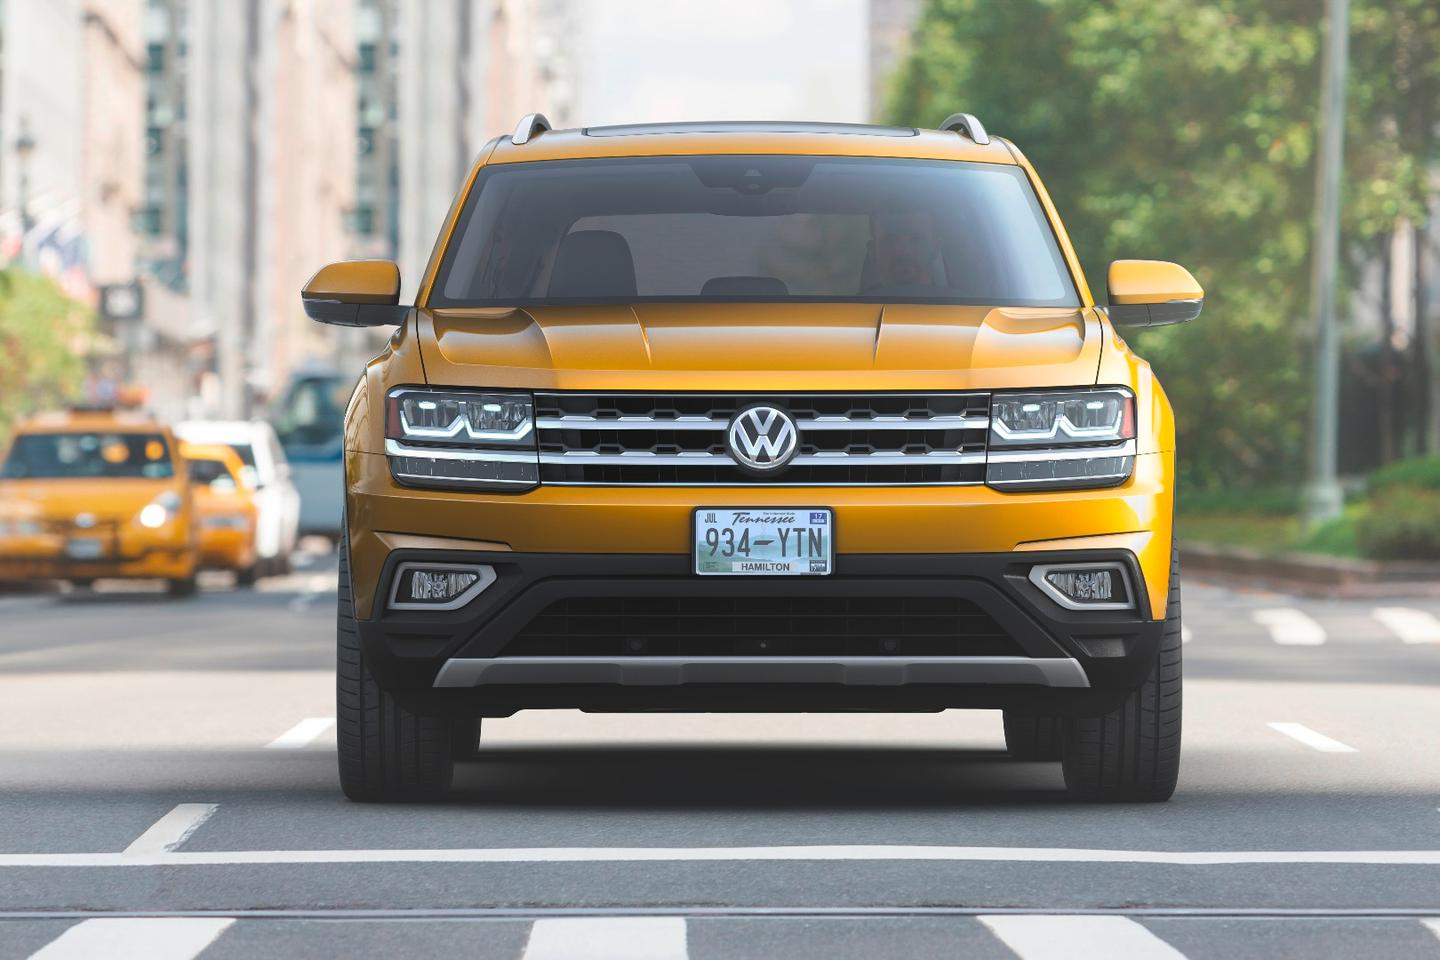 A thin, sport-minded grille marks all current-generation Volkswagen models including the upcoming 2018 Atlas